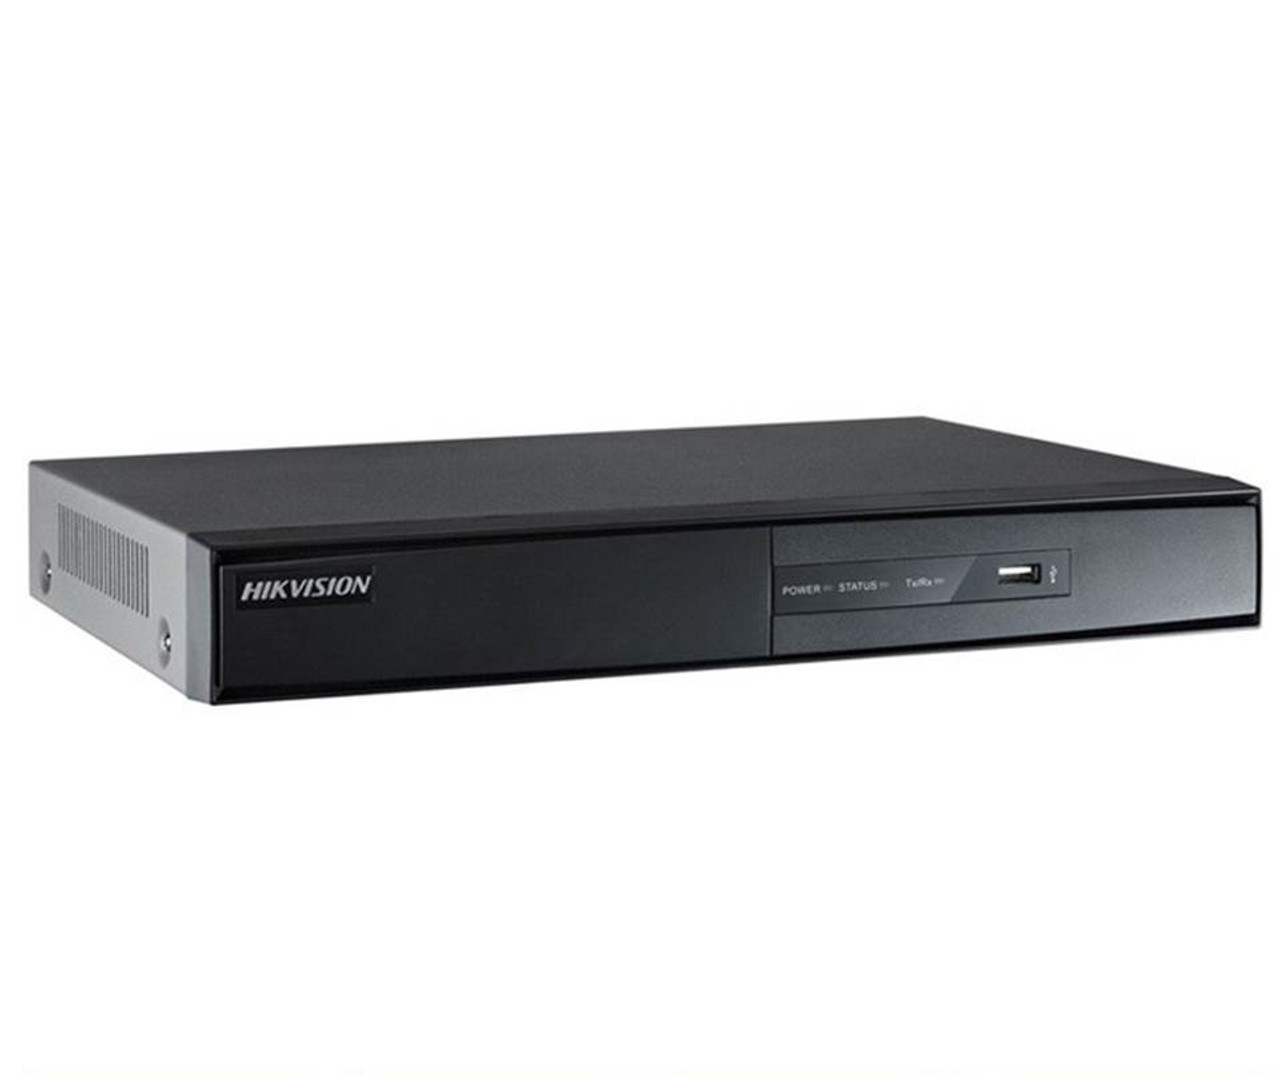 Hikvision DS-7216HGHI-SH 16 Channel Turbo HD Digital Video Recorder - No  HDD included